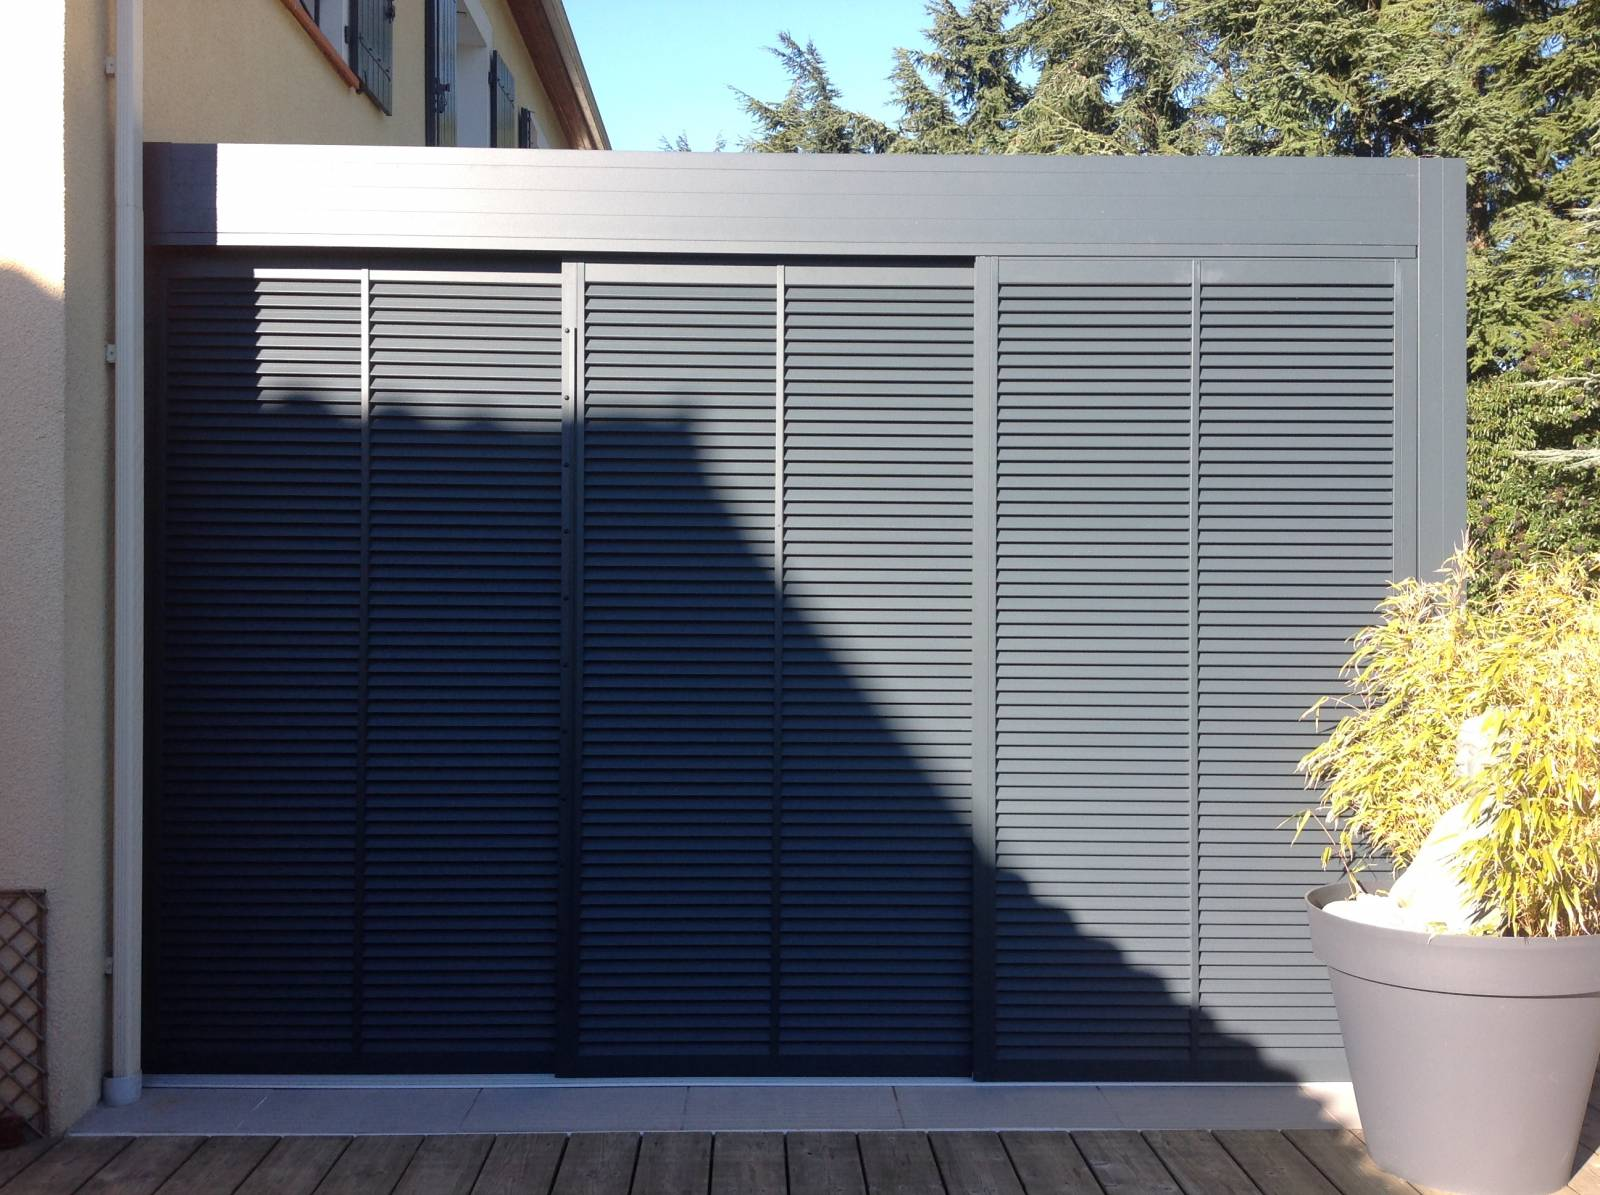 Barette Led Options Pour Pergola Bioclimatique - Installation De